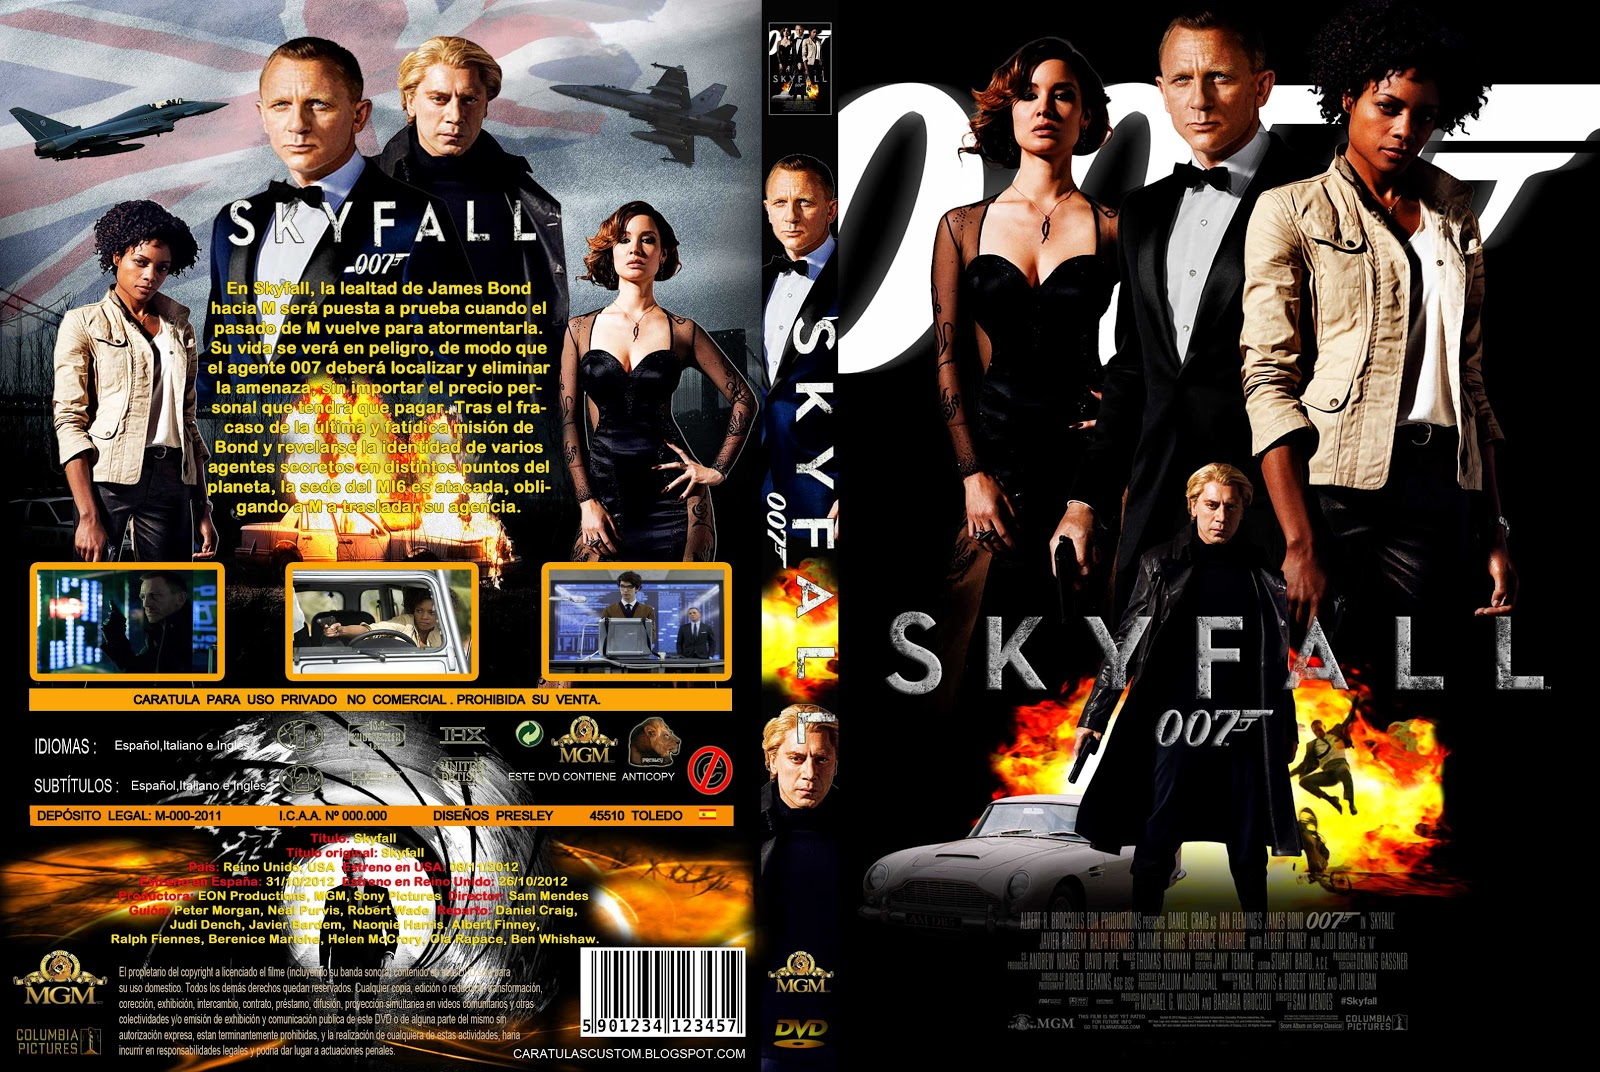 Pin Skyfall Dvd ...007 Skyfall Dvd Cover